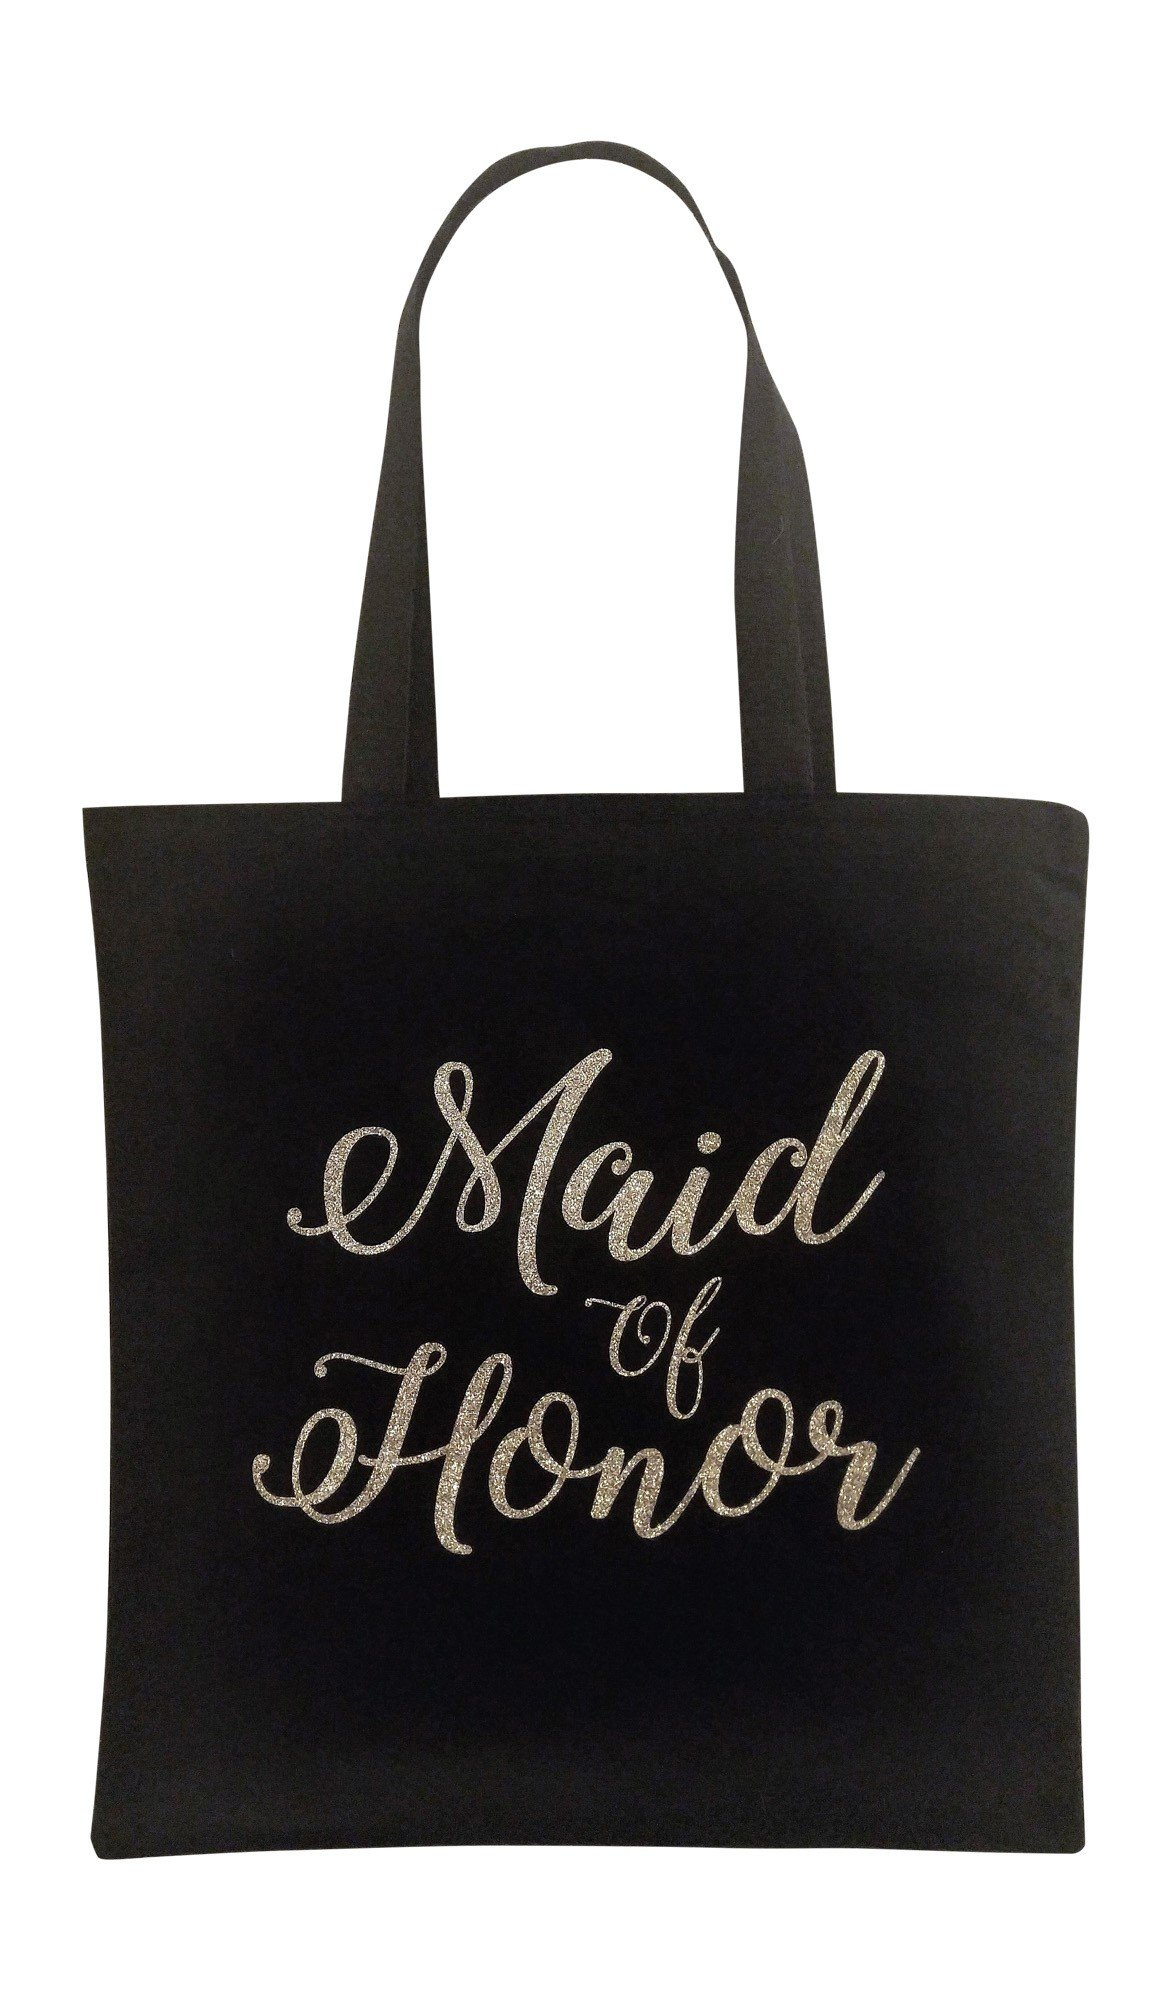 The Spoiled Office Wedding Party Bridal Tote Bag with Gold Lettering - Large Canvas 15'' x 16'' (Maid of Honor in Black)